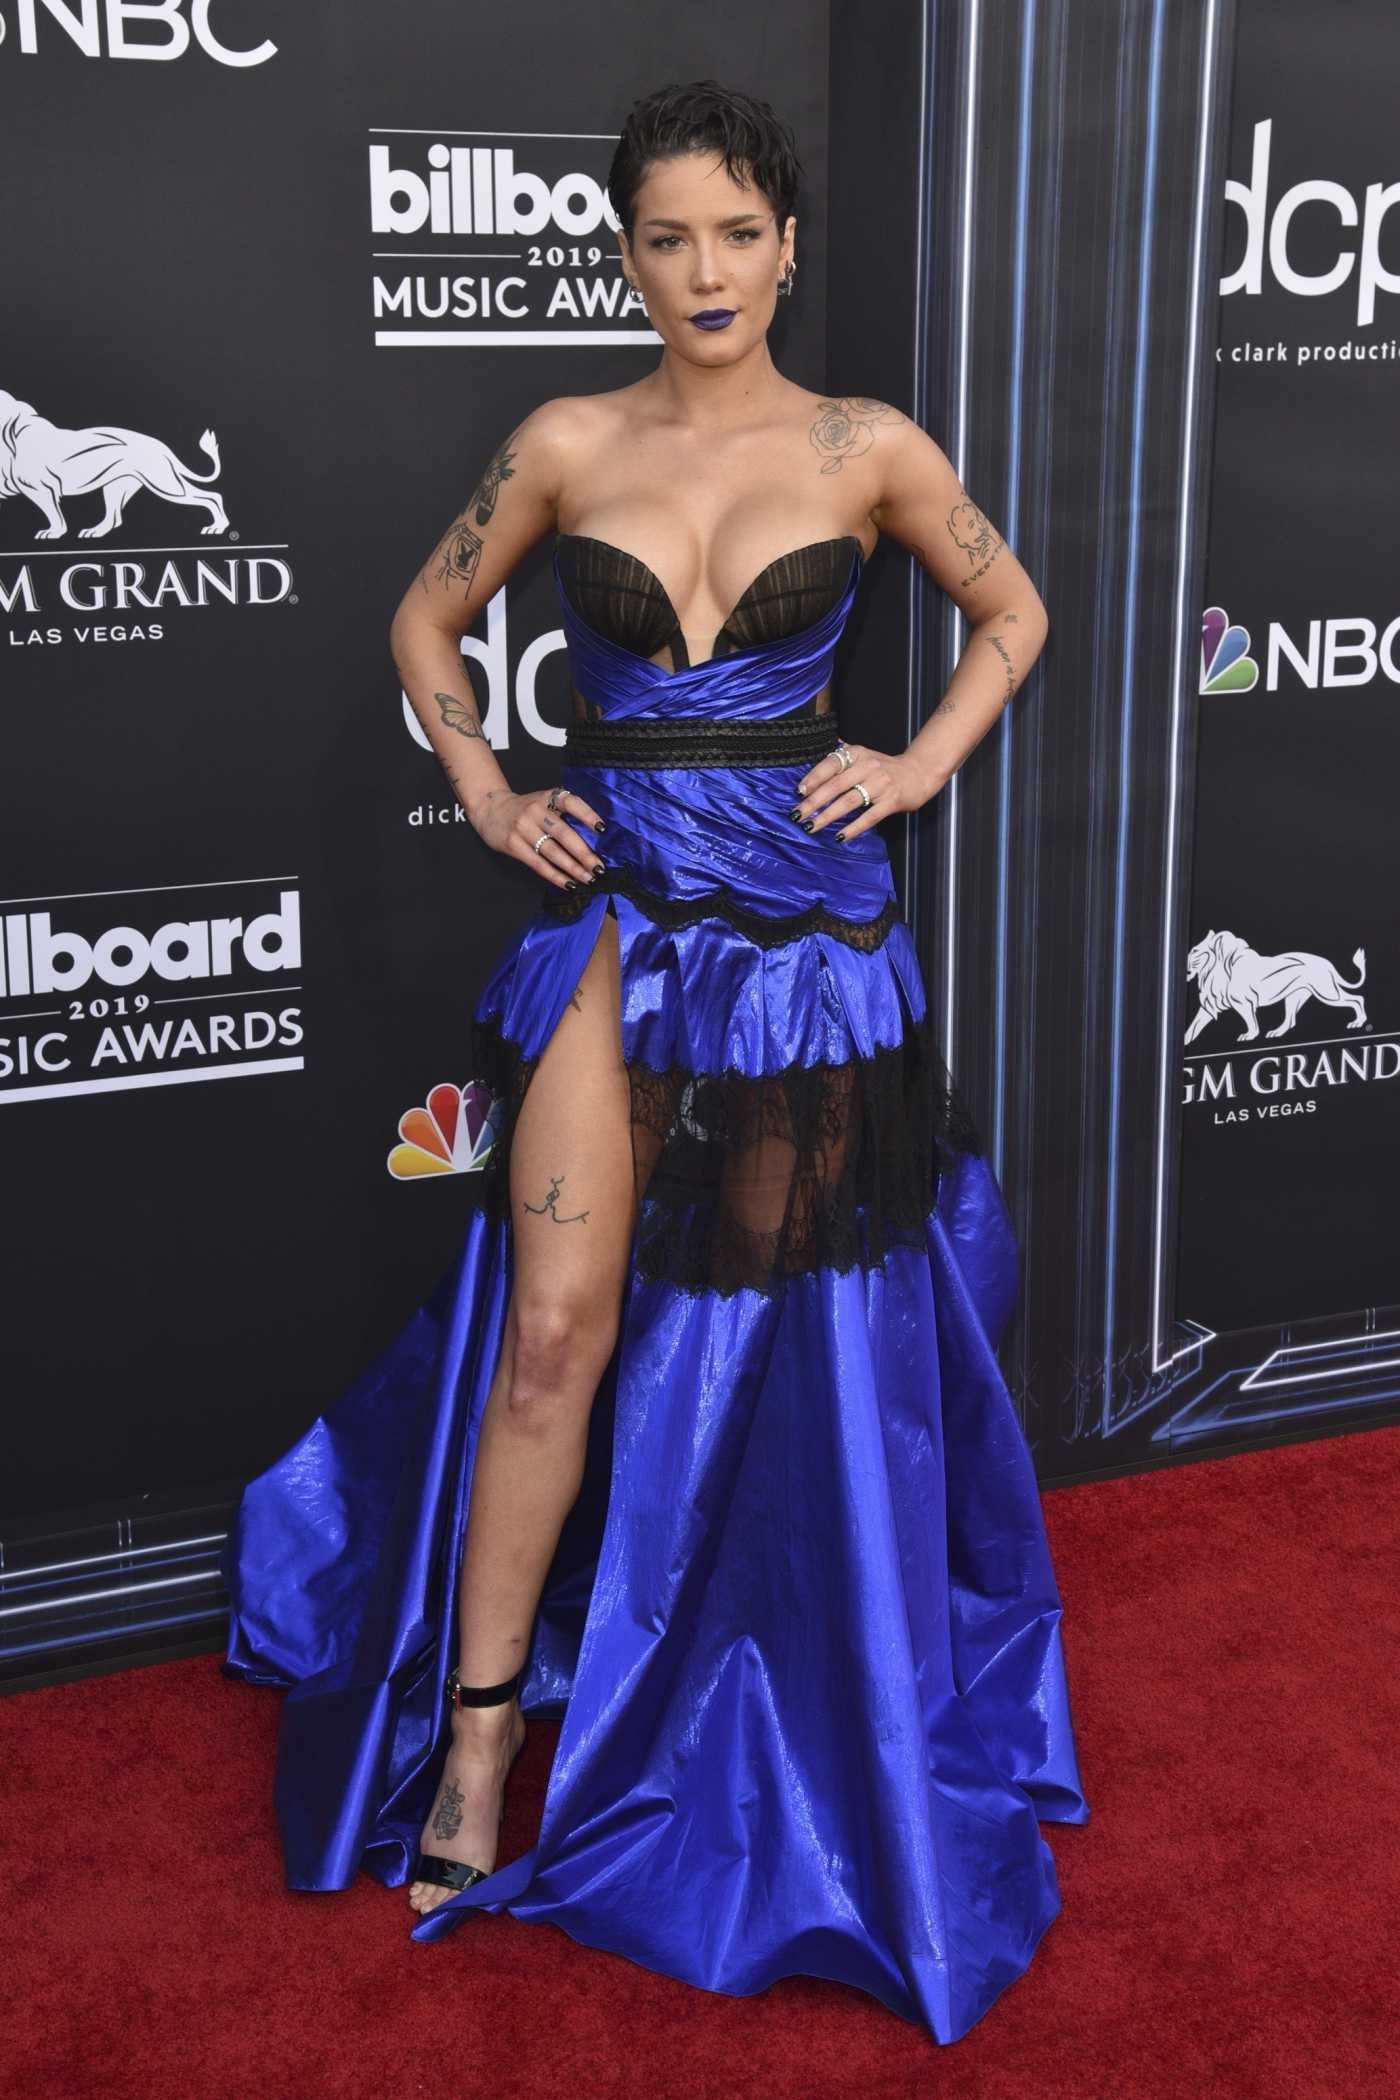 Halsey Attends 2019 Billboard Music Awards at MGM Grand Garden Arena in Las Vegas 05/01/2019